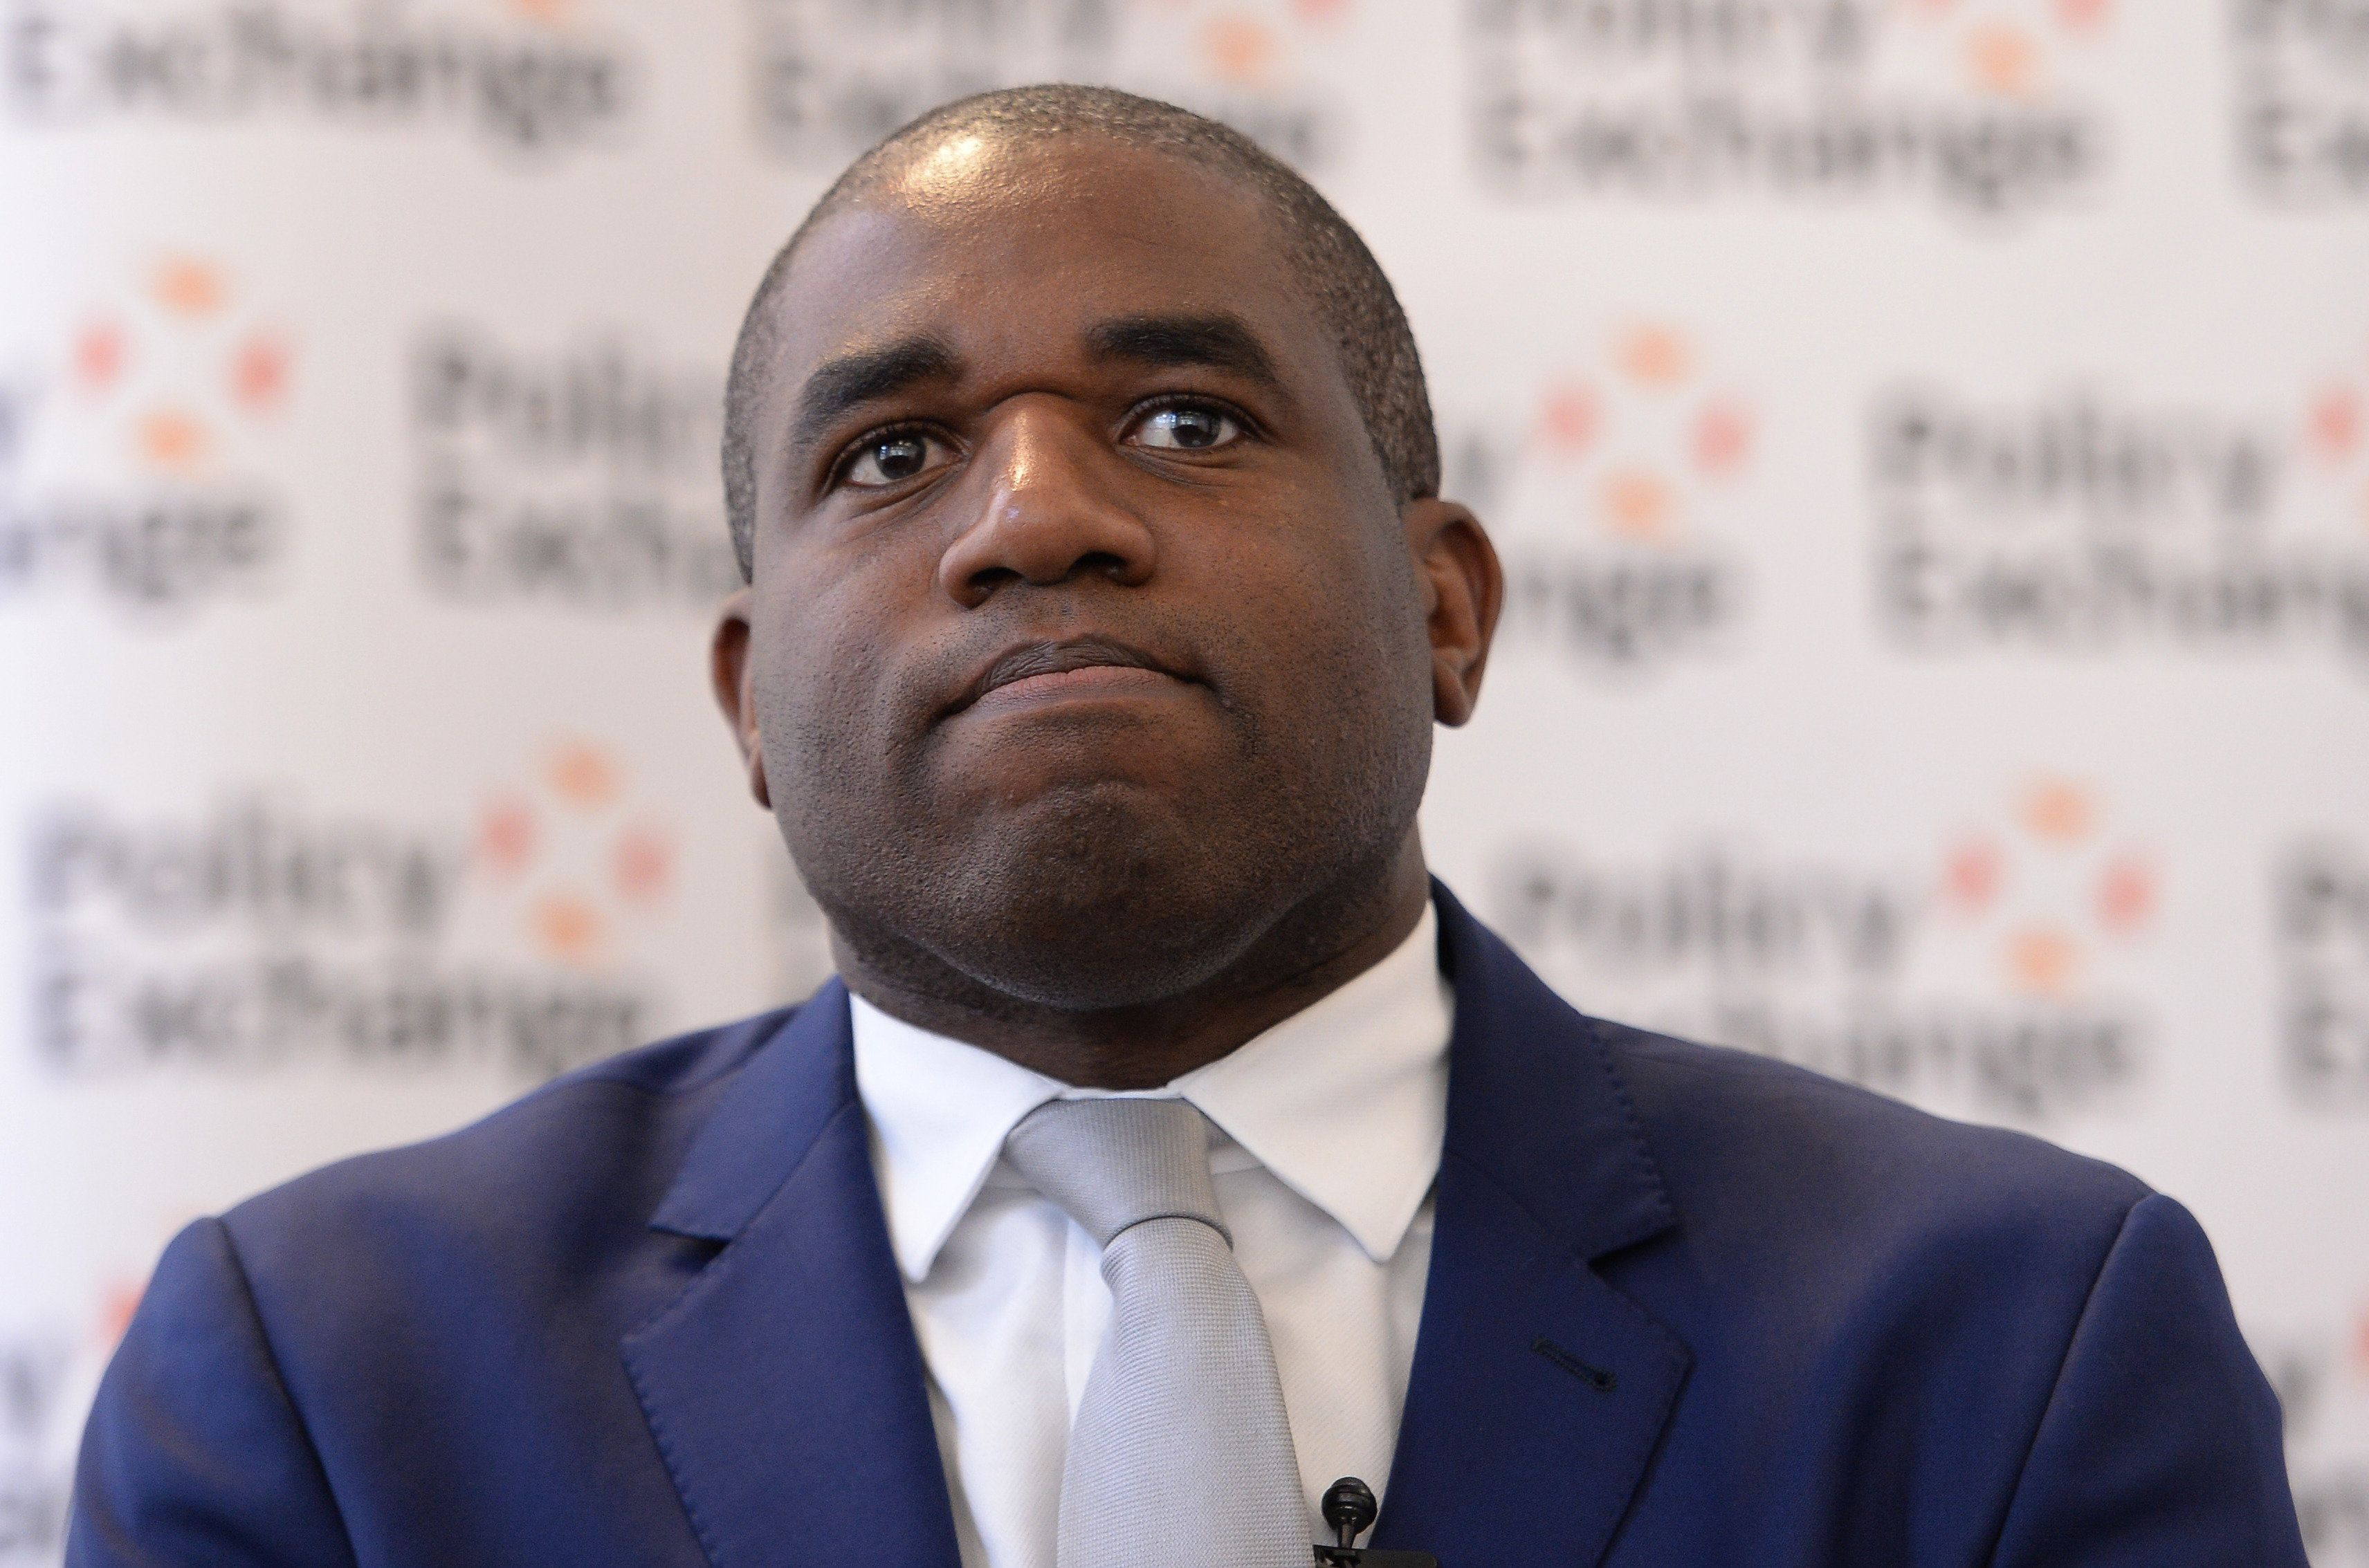 David Lammy said John Whittingdale was bullying the BBC by pre-briefing the press ahead of publishing...